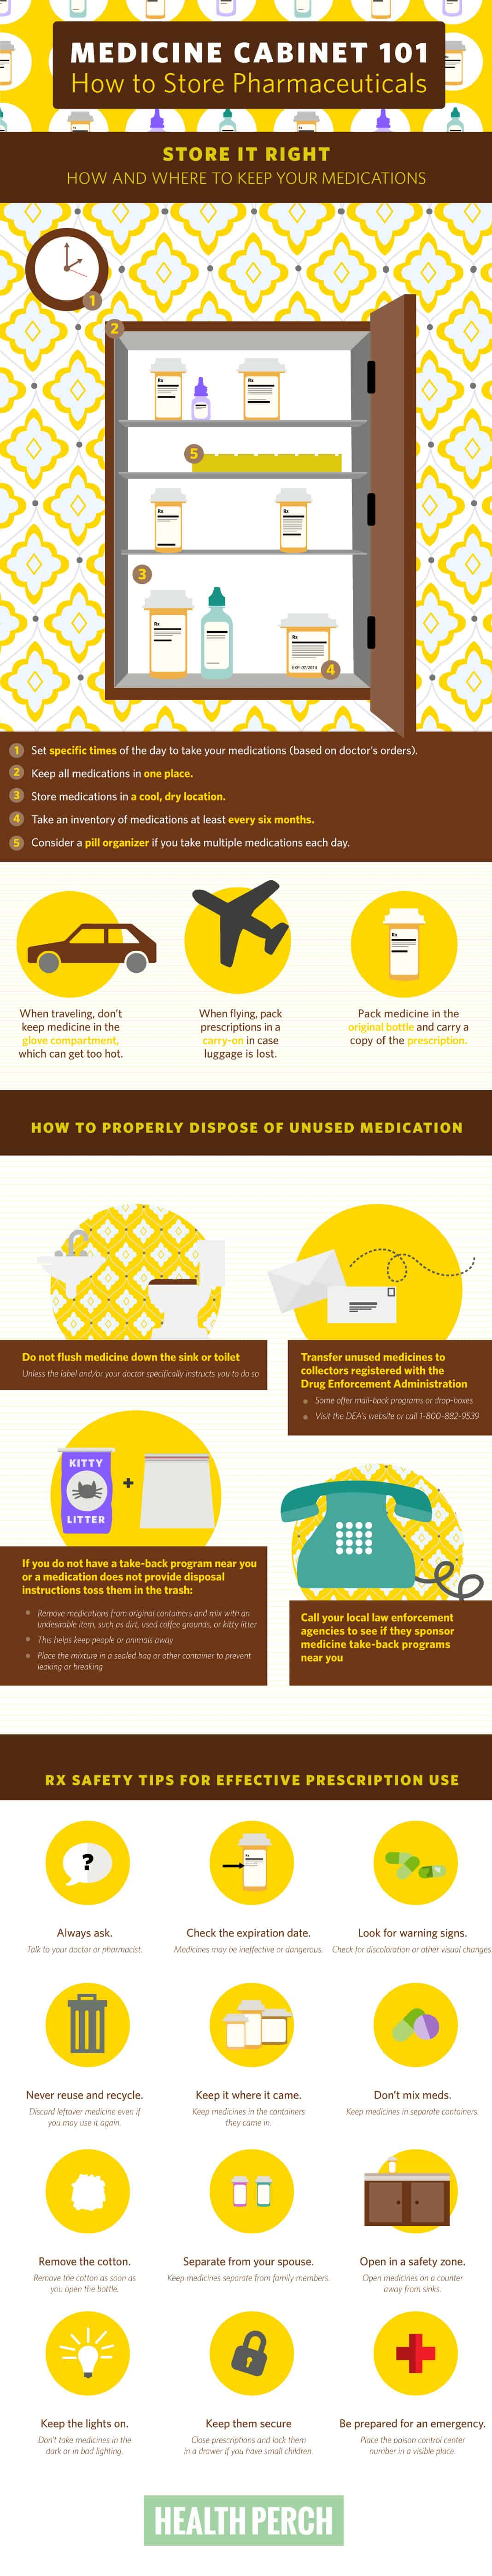 organizing medications - Medicine Cabinet 101